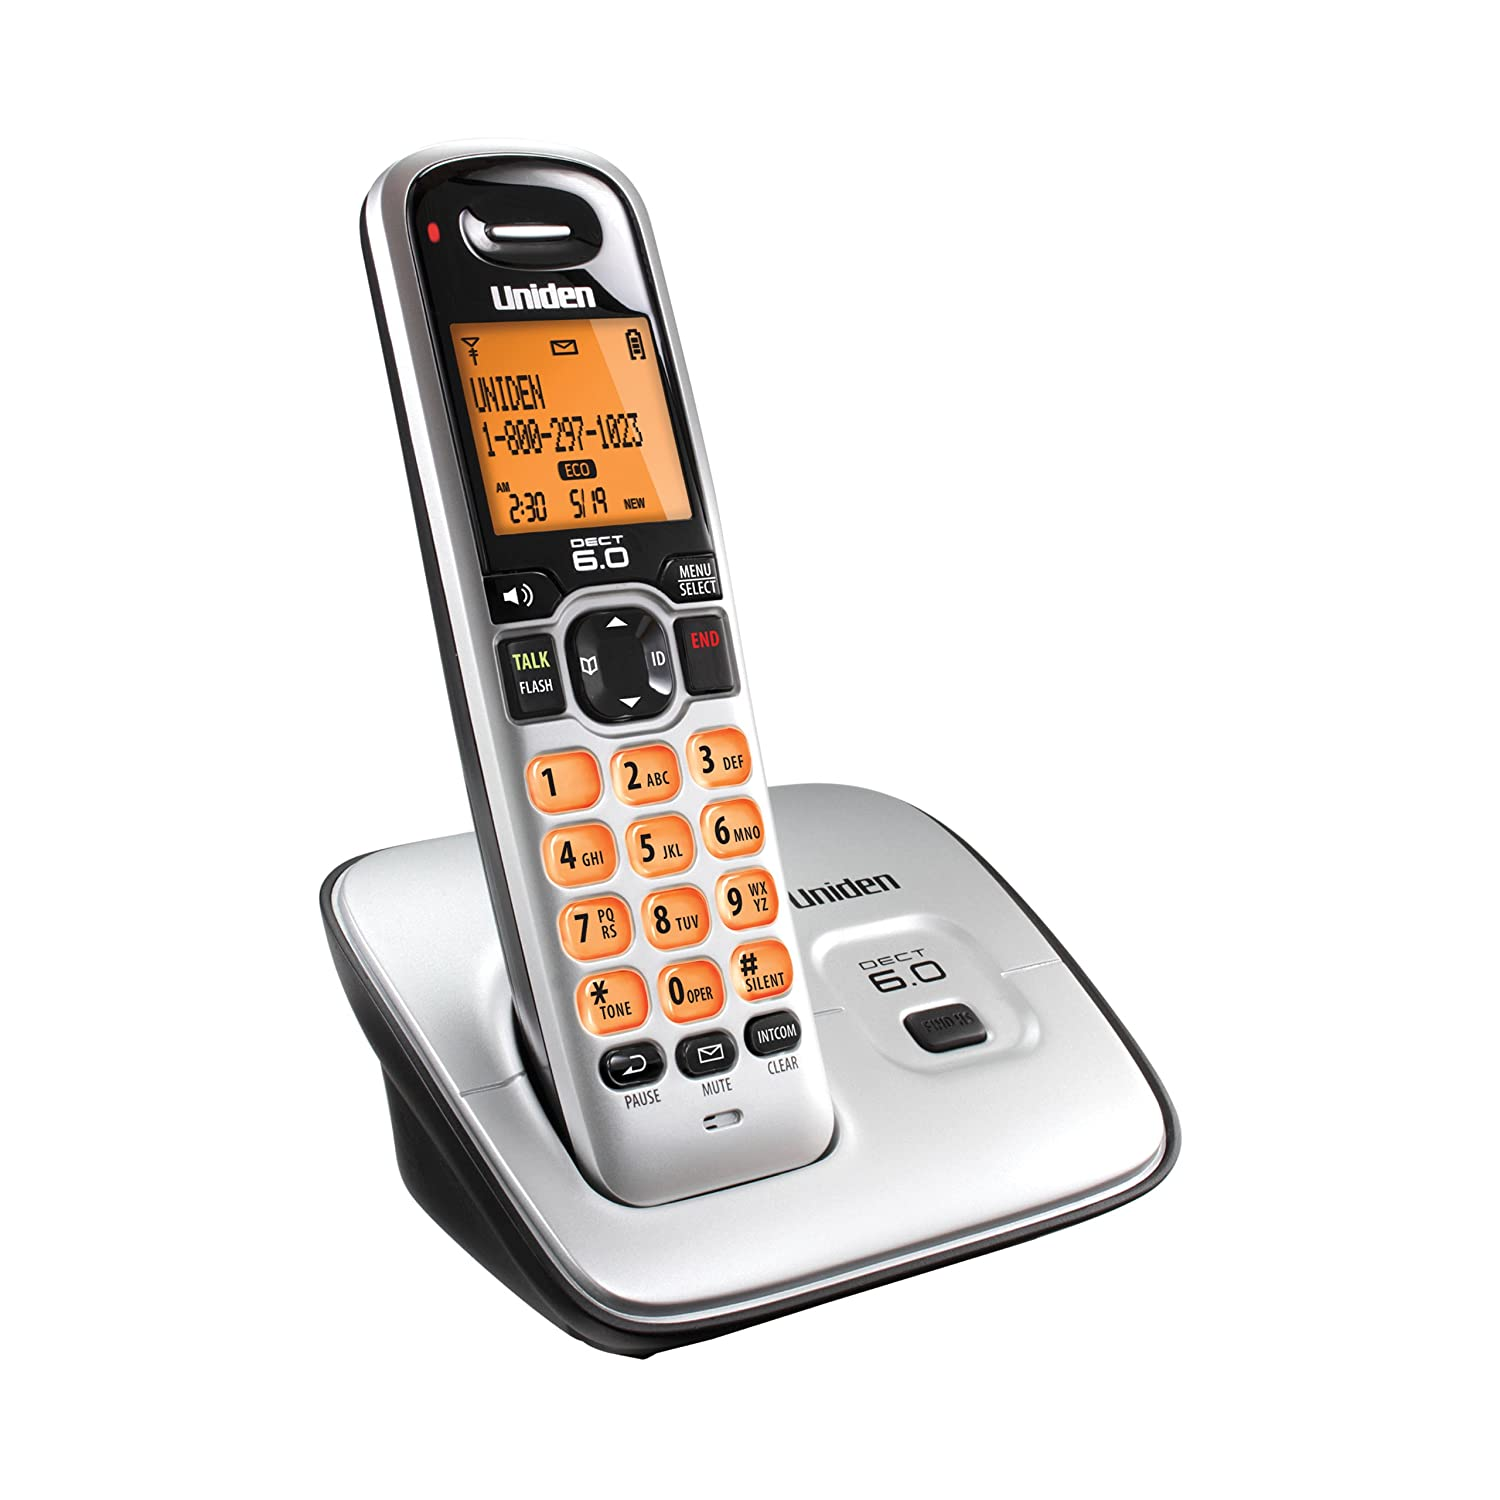 Amazon.com: Uniden DCX160 Accessory Handset for D1600 Series: Electronics